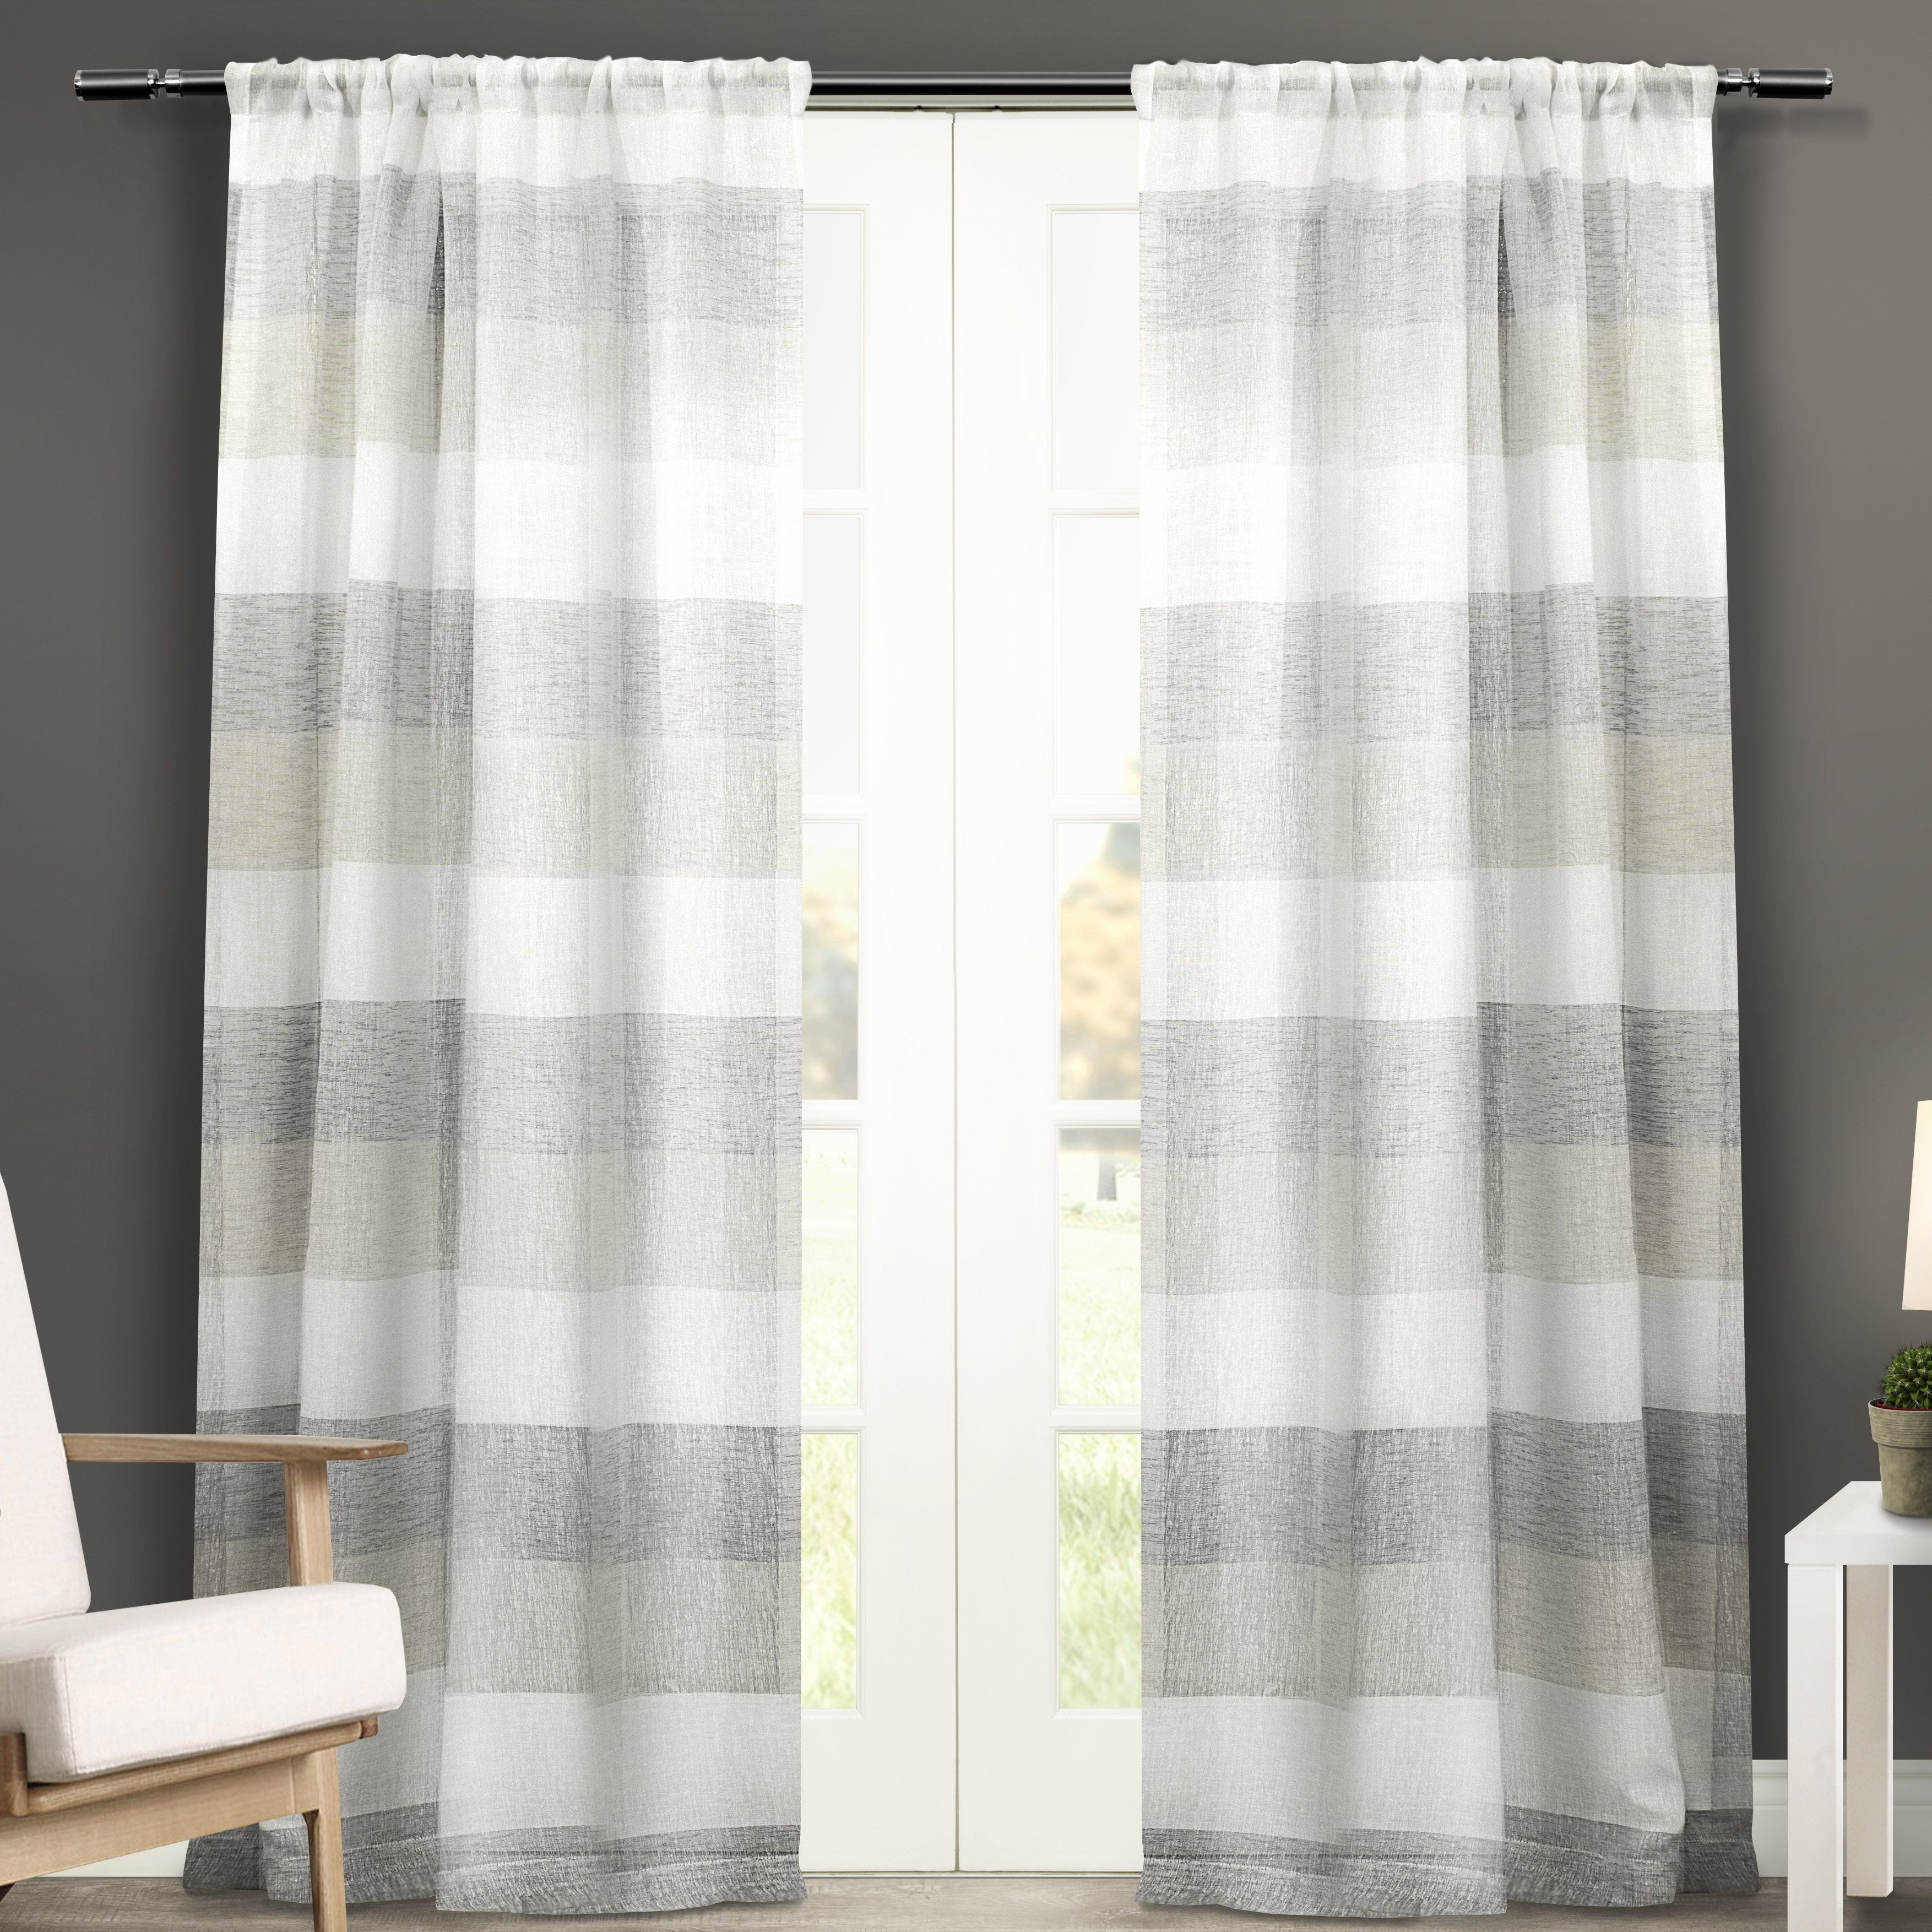 wayfair window treatments bathroom curtains drapes youll love wayfair westport condo pinterest